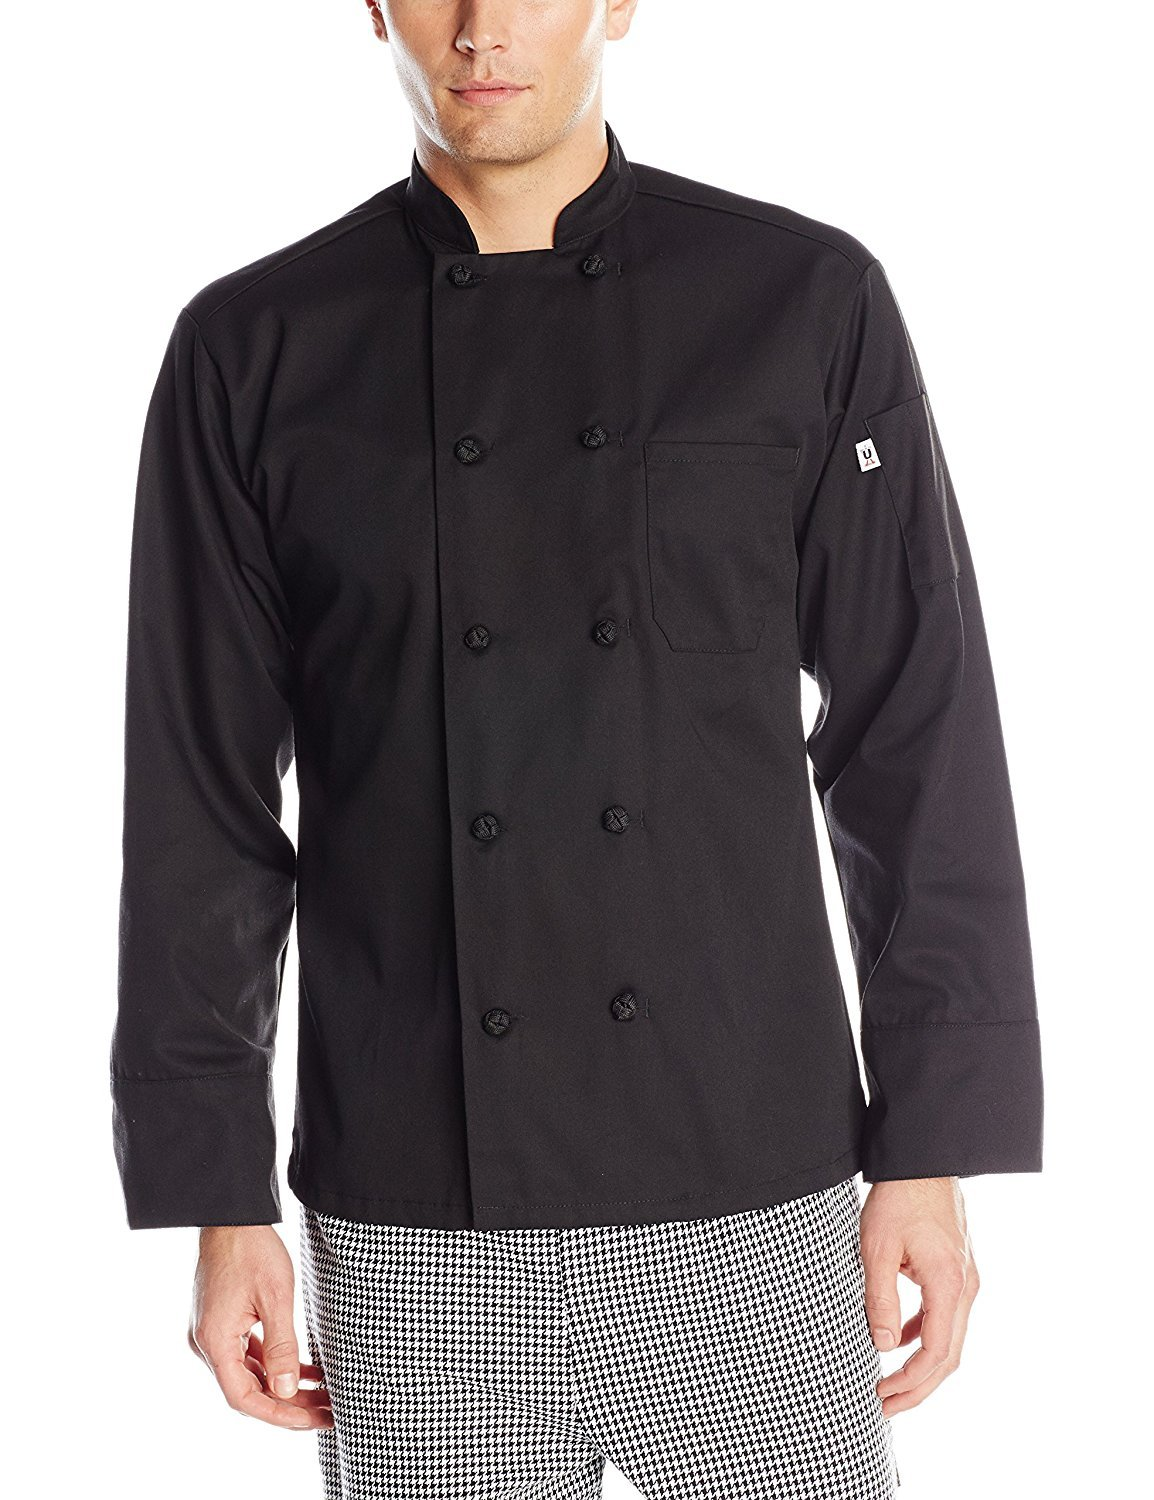 Uncommon Threads Unisex Classic Knot Button Chef Coat, White, X-Large